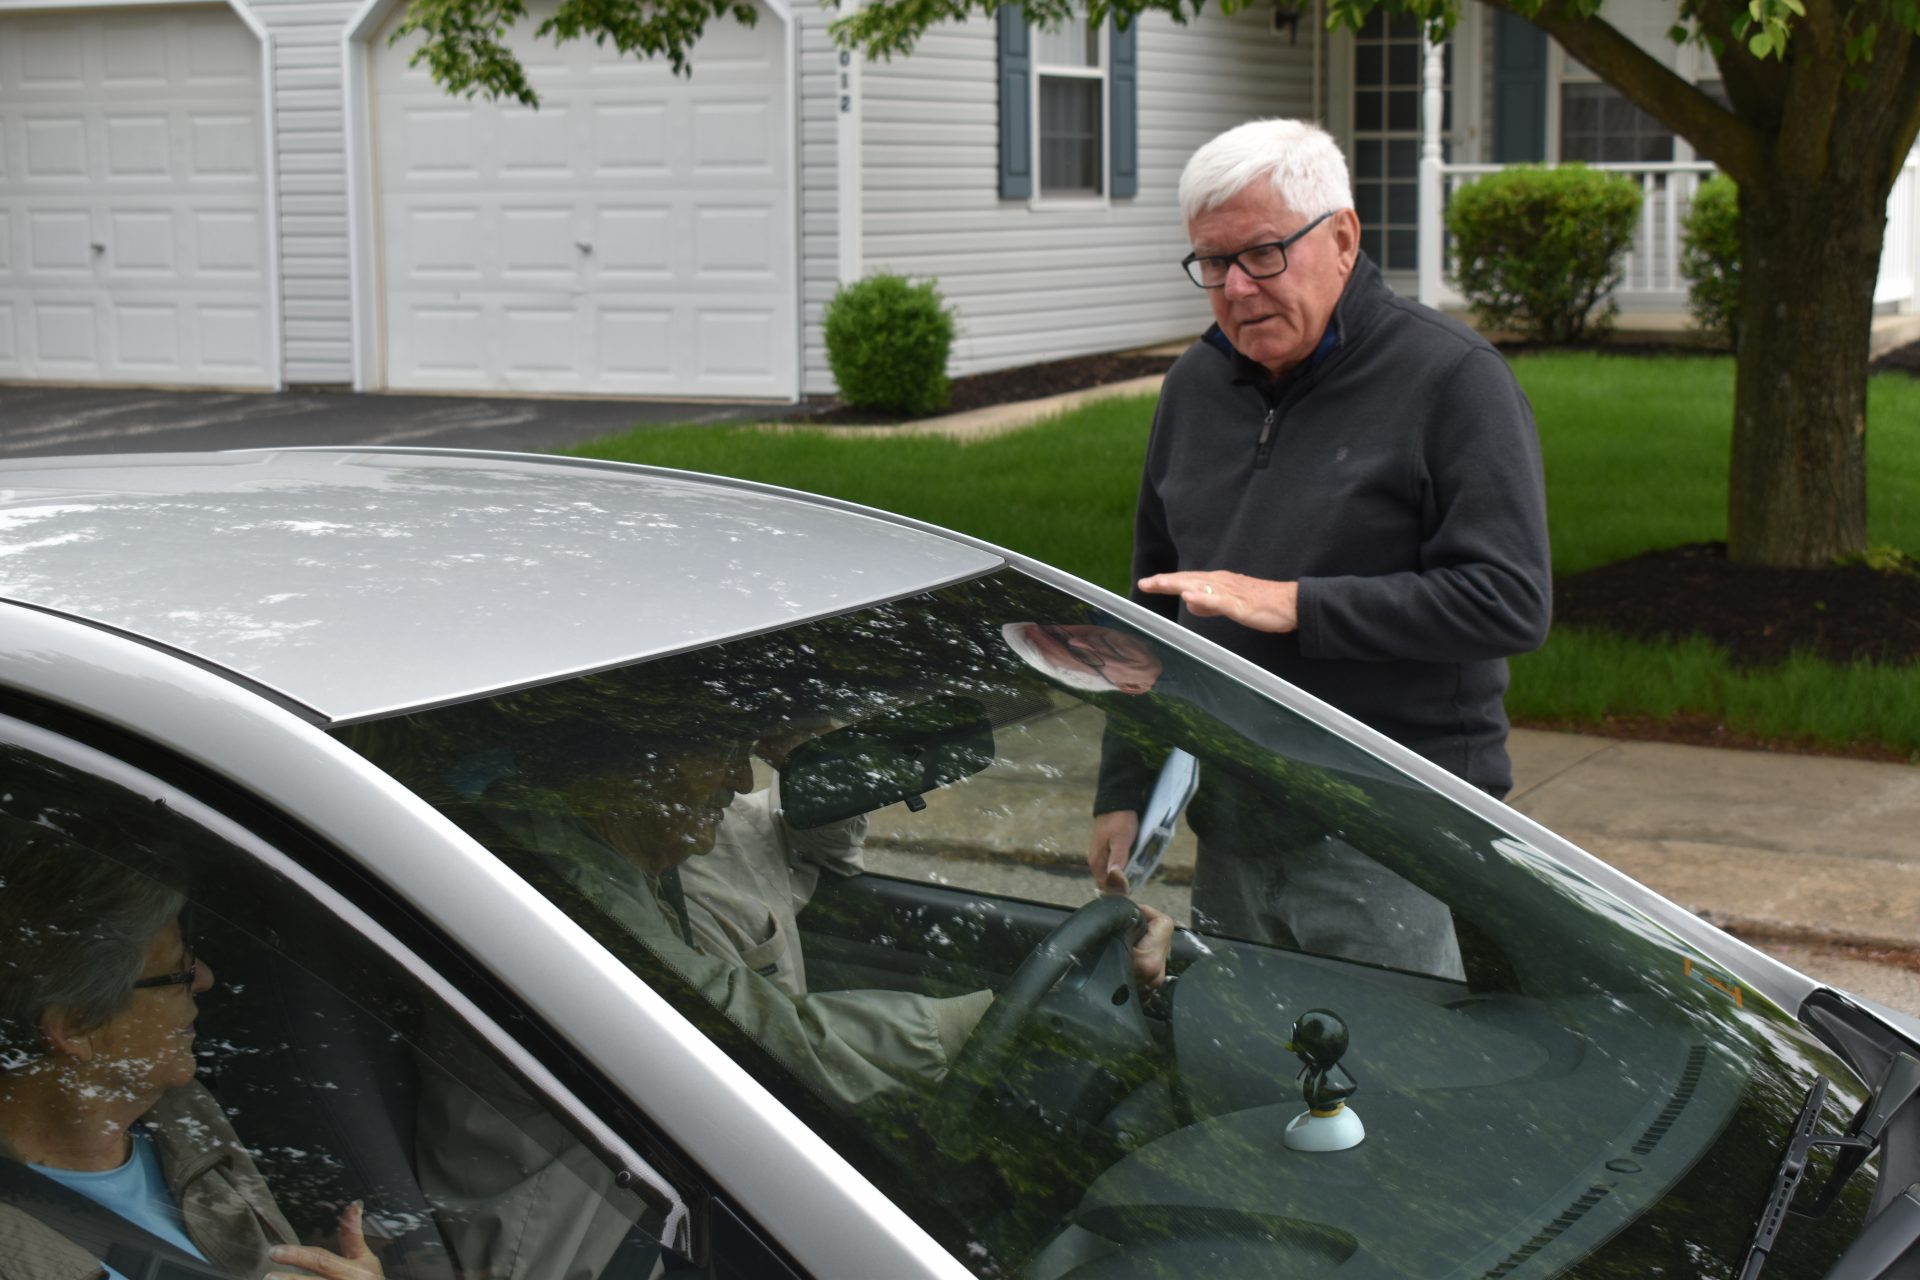 Republican Steve Chronister talks to voters in their car on May 8, 2019, while campaigning for York County commissioner.